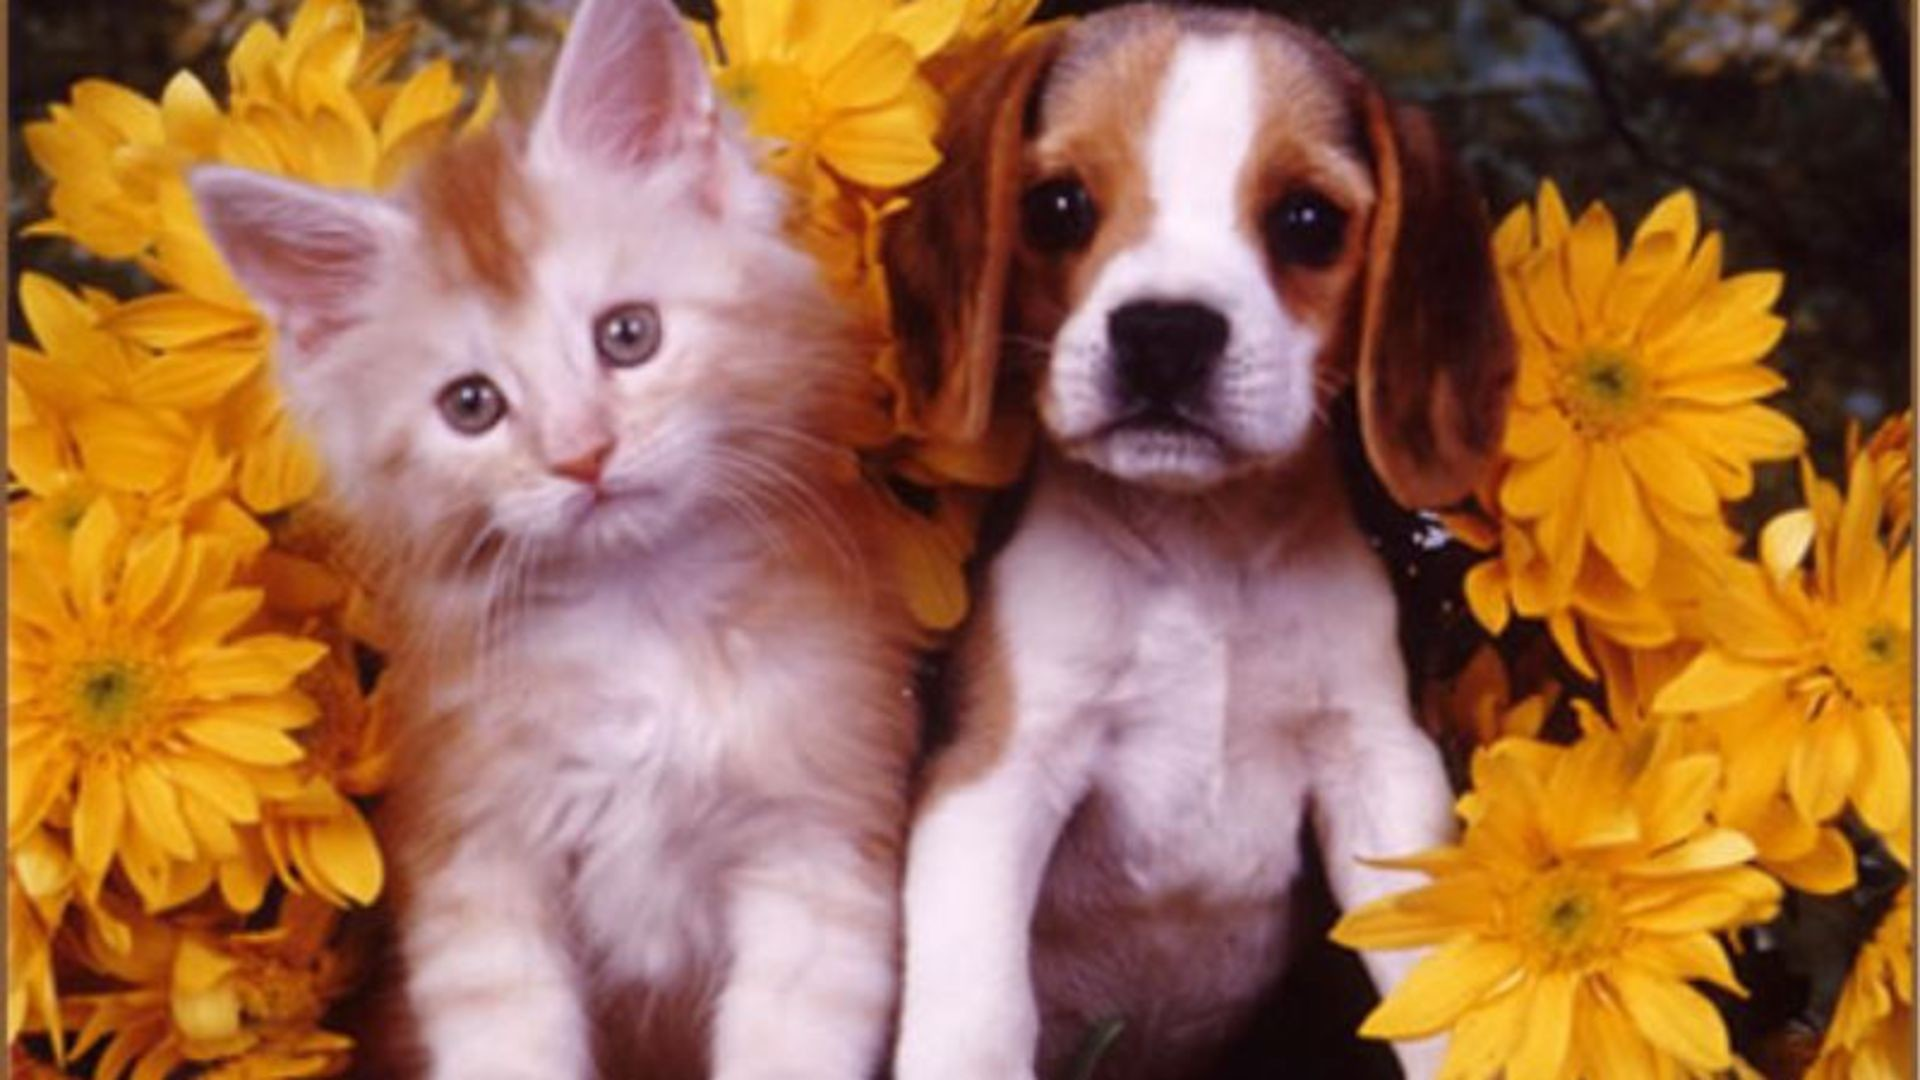 Puppies and Kittens Wallpaper ·â'